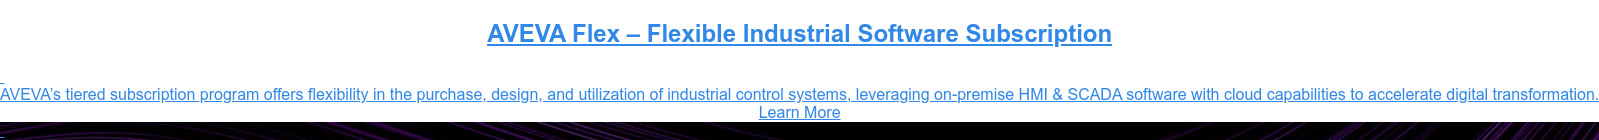 AVEVA Flex – Flexible Industrial Software Subscription    AVEVA's tiered subscription program offers flexibility in the purchase,  design, and utilization of industrial control systems, leveraging on-premise  HMI & SCADA software with cloud capabilities to accelerate digital  transformation. Learn More